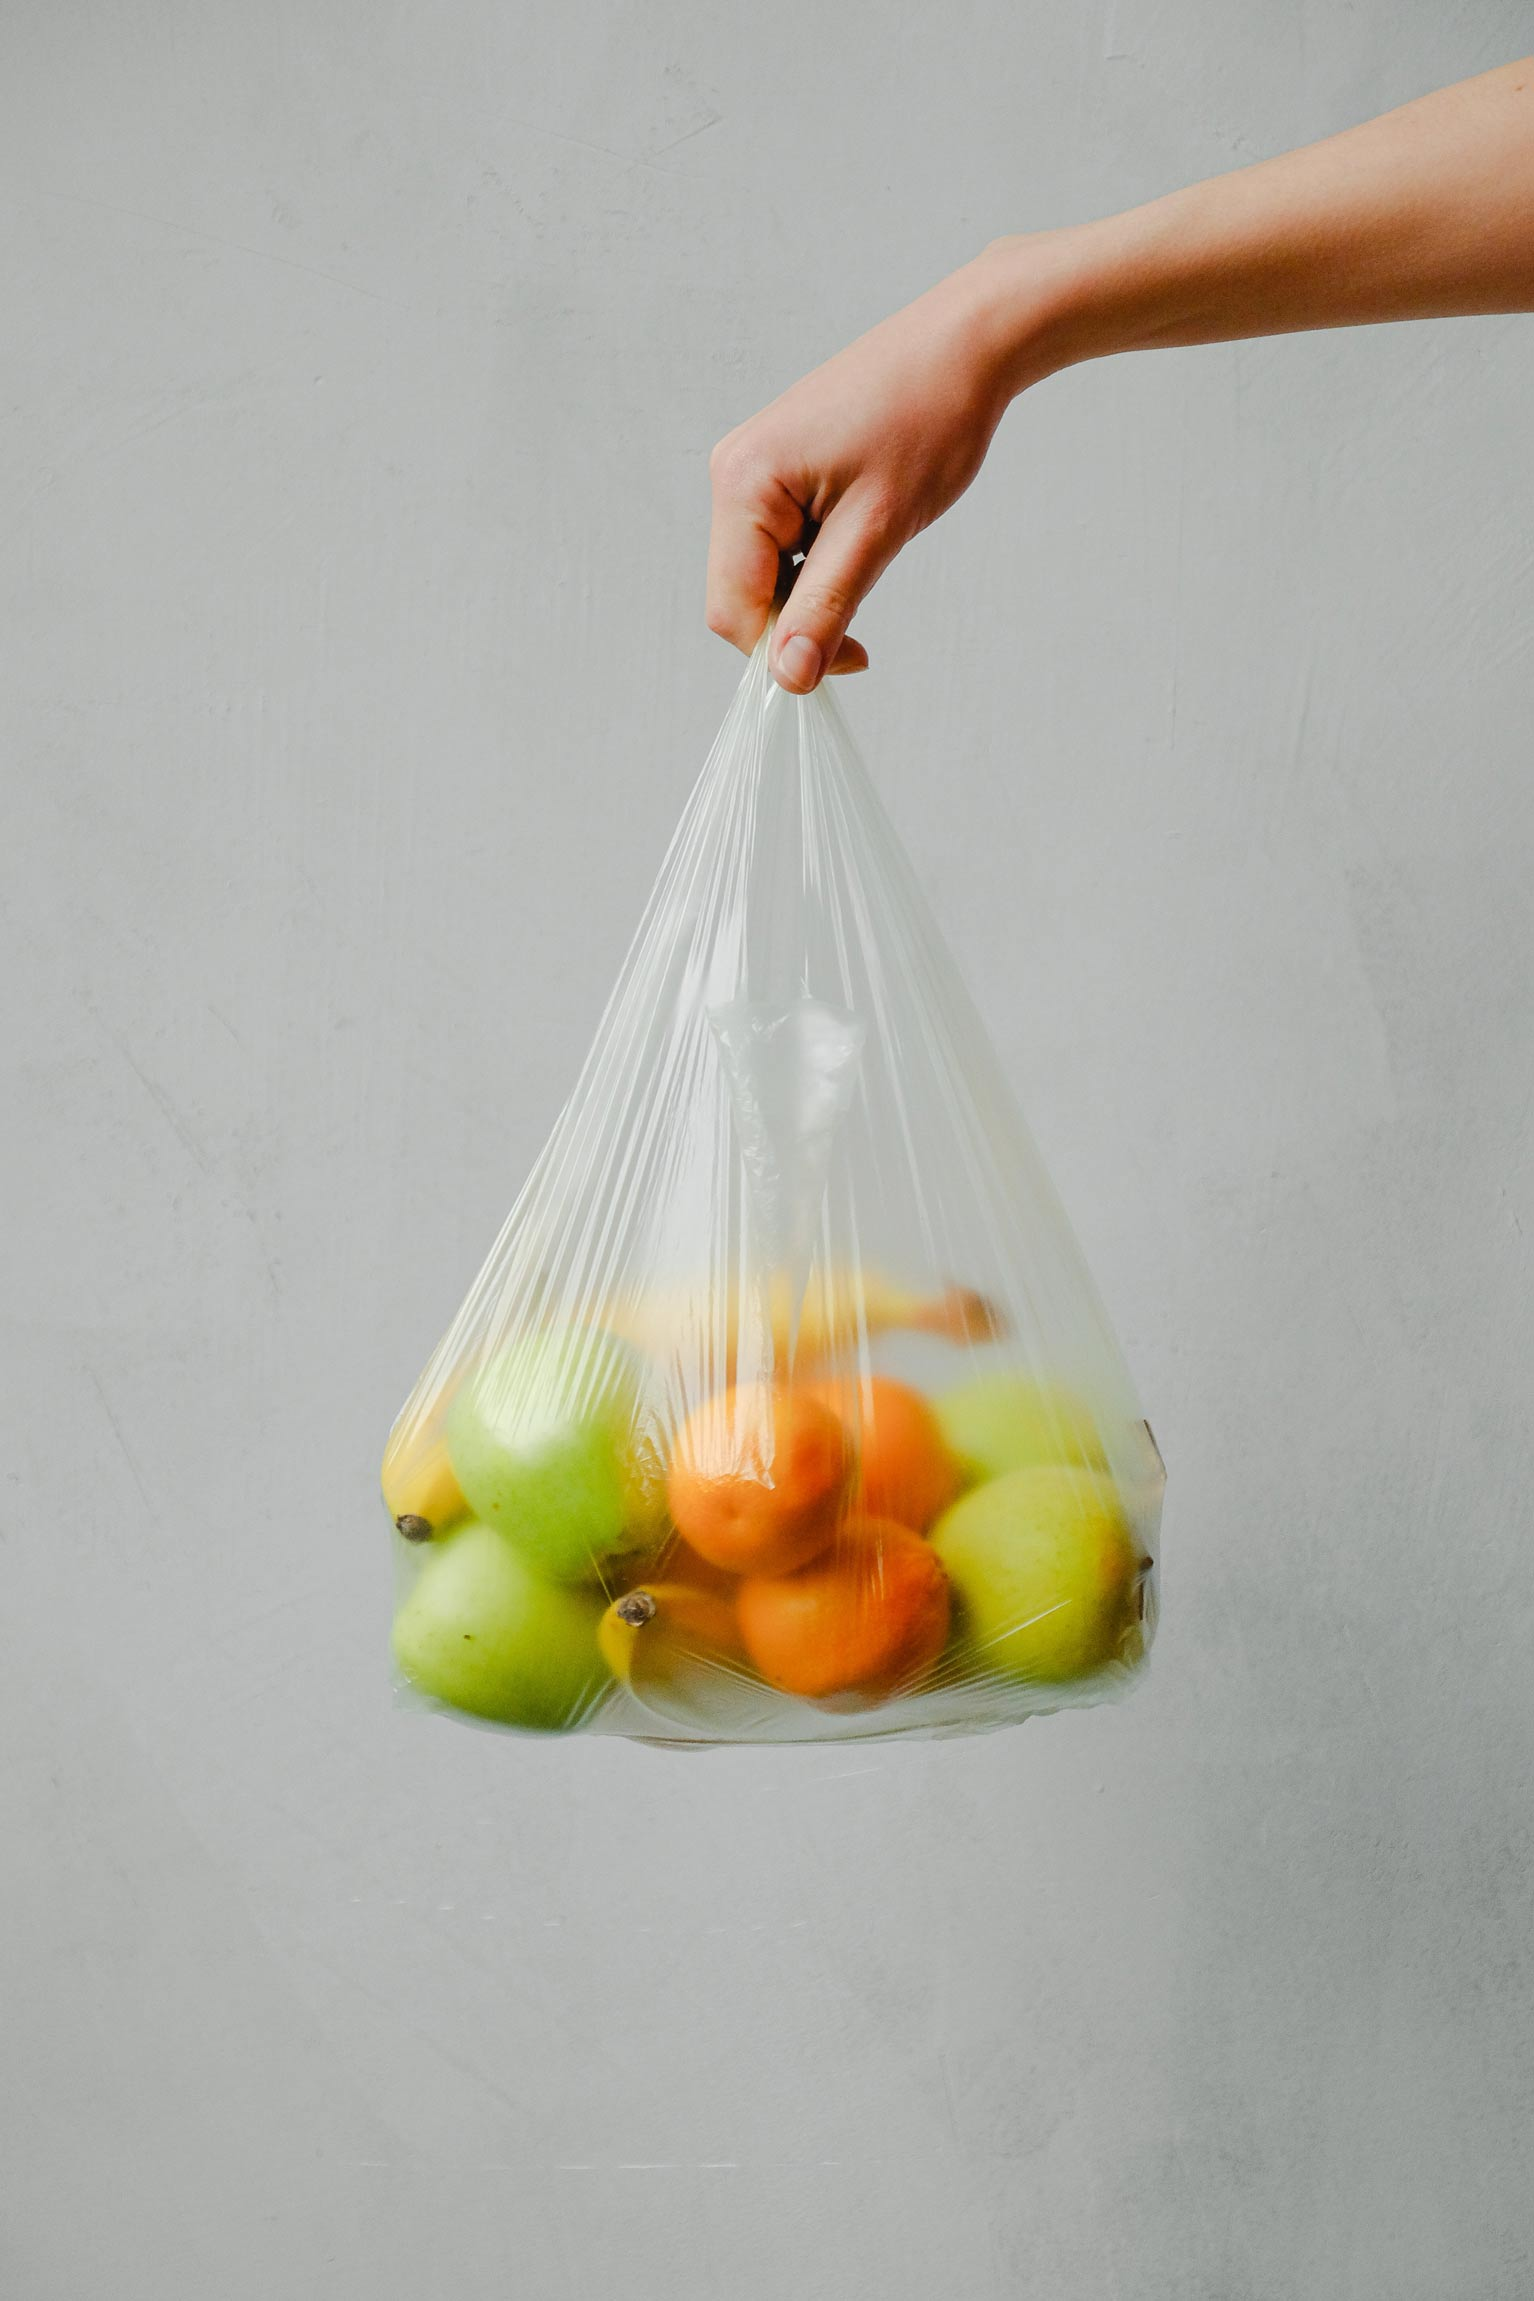 fruit in plastic bag